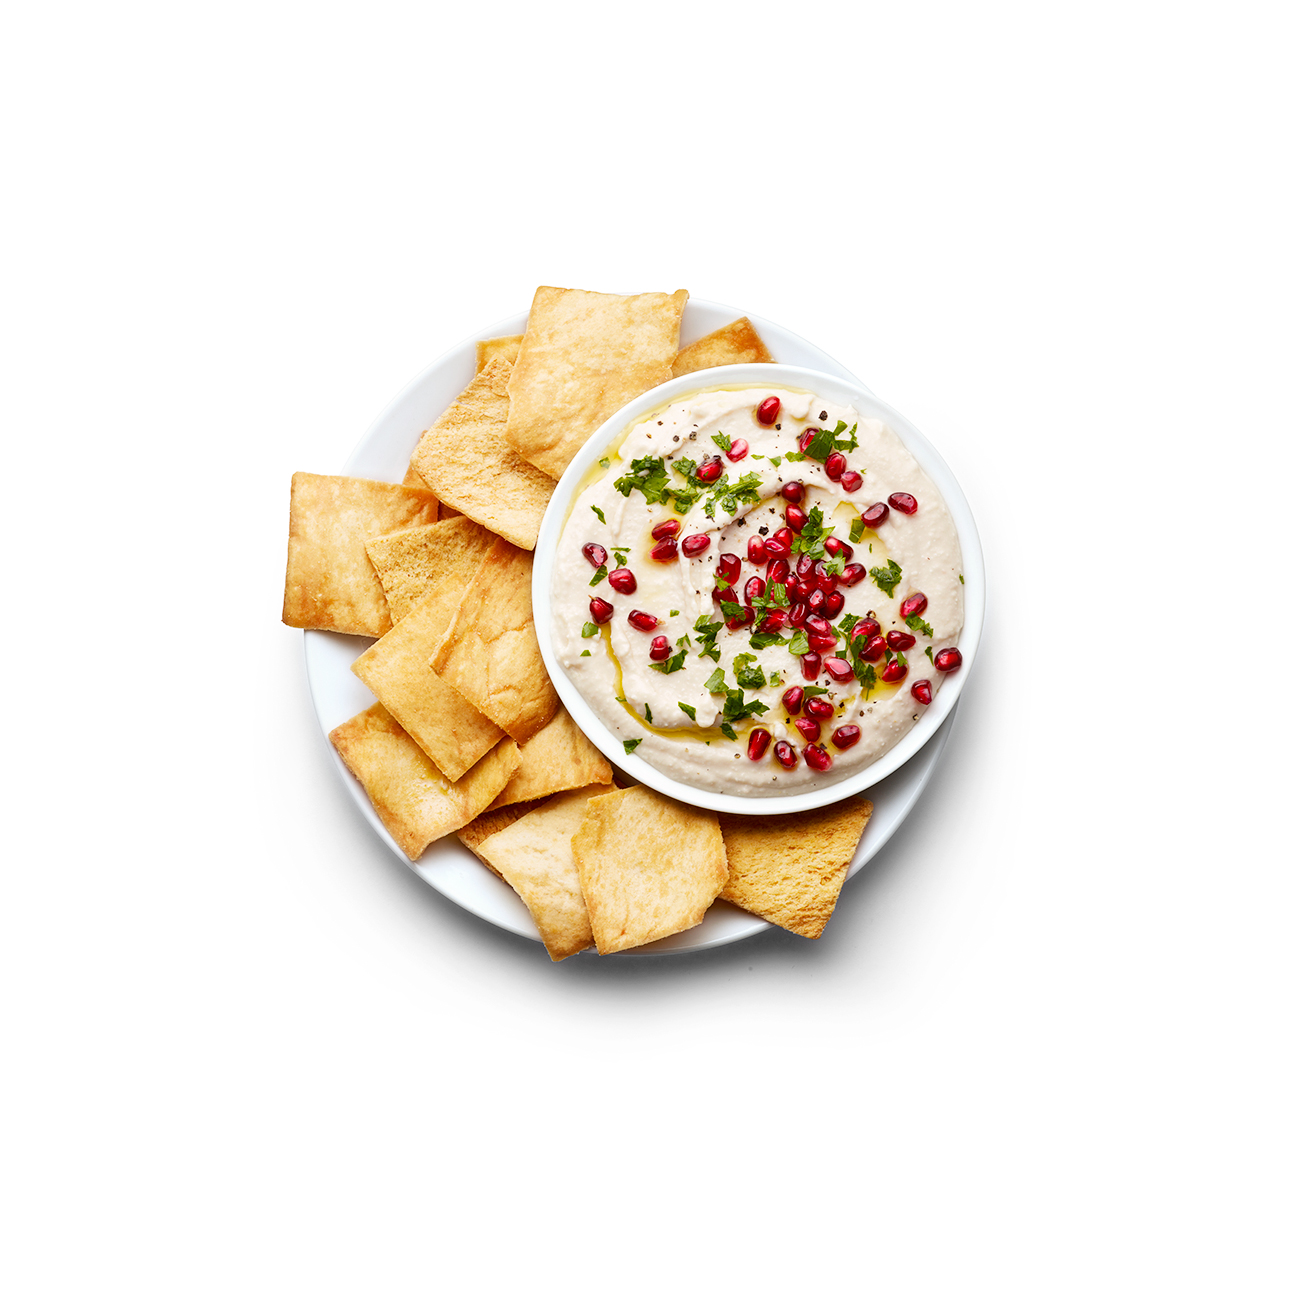 feta-white-bean-dip-pomegranate-seeds